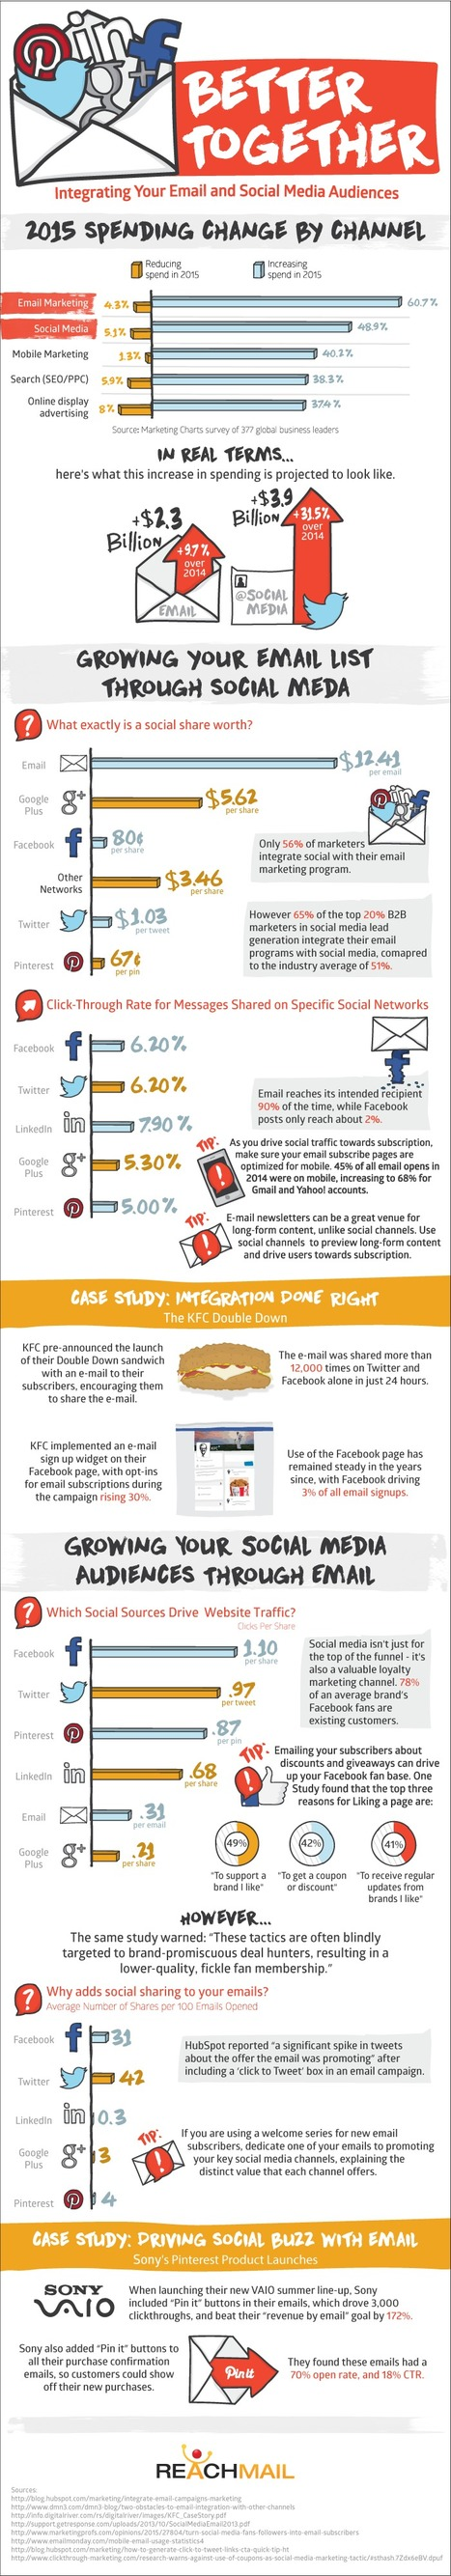 Email vs. Social Media Marketing: Which is Better? #Infographic | MarketingHits | Scoop.it